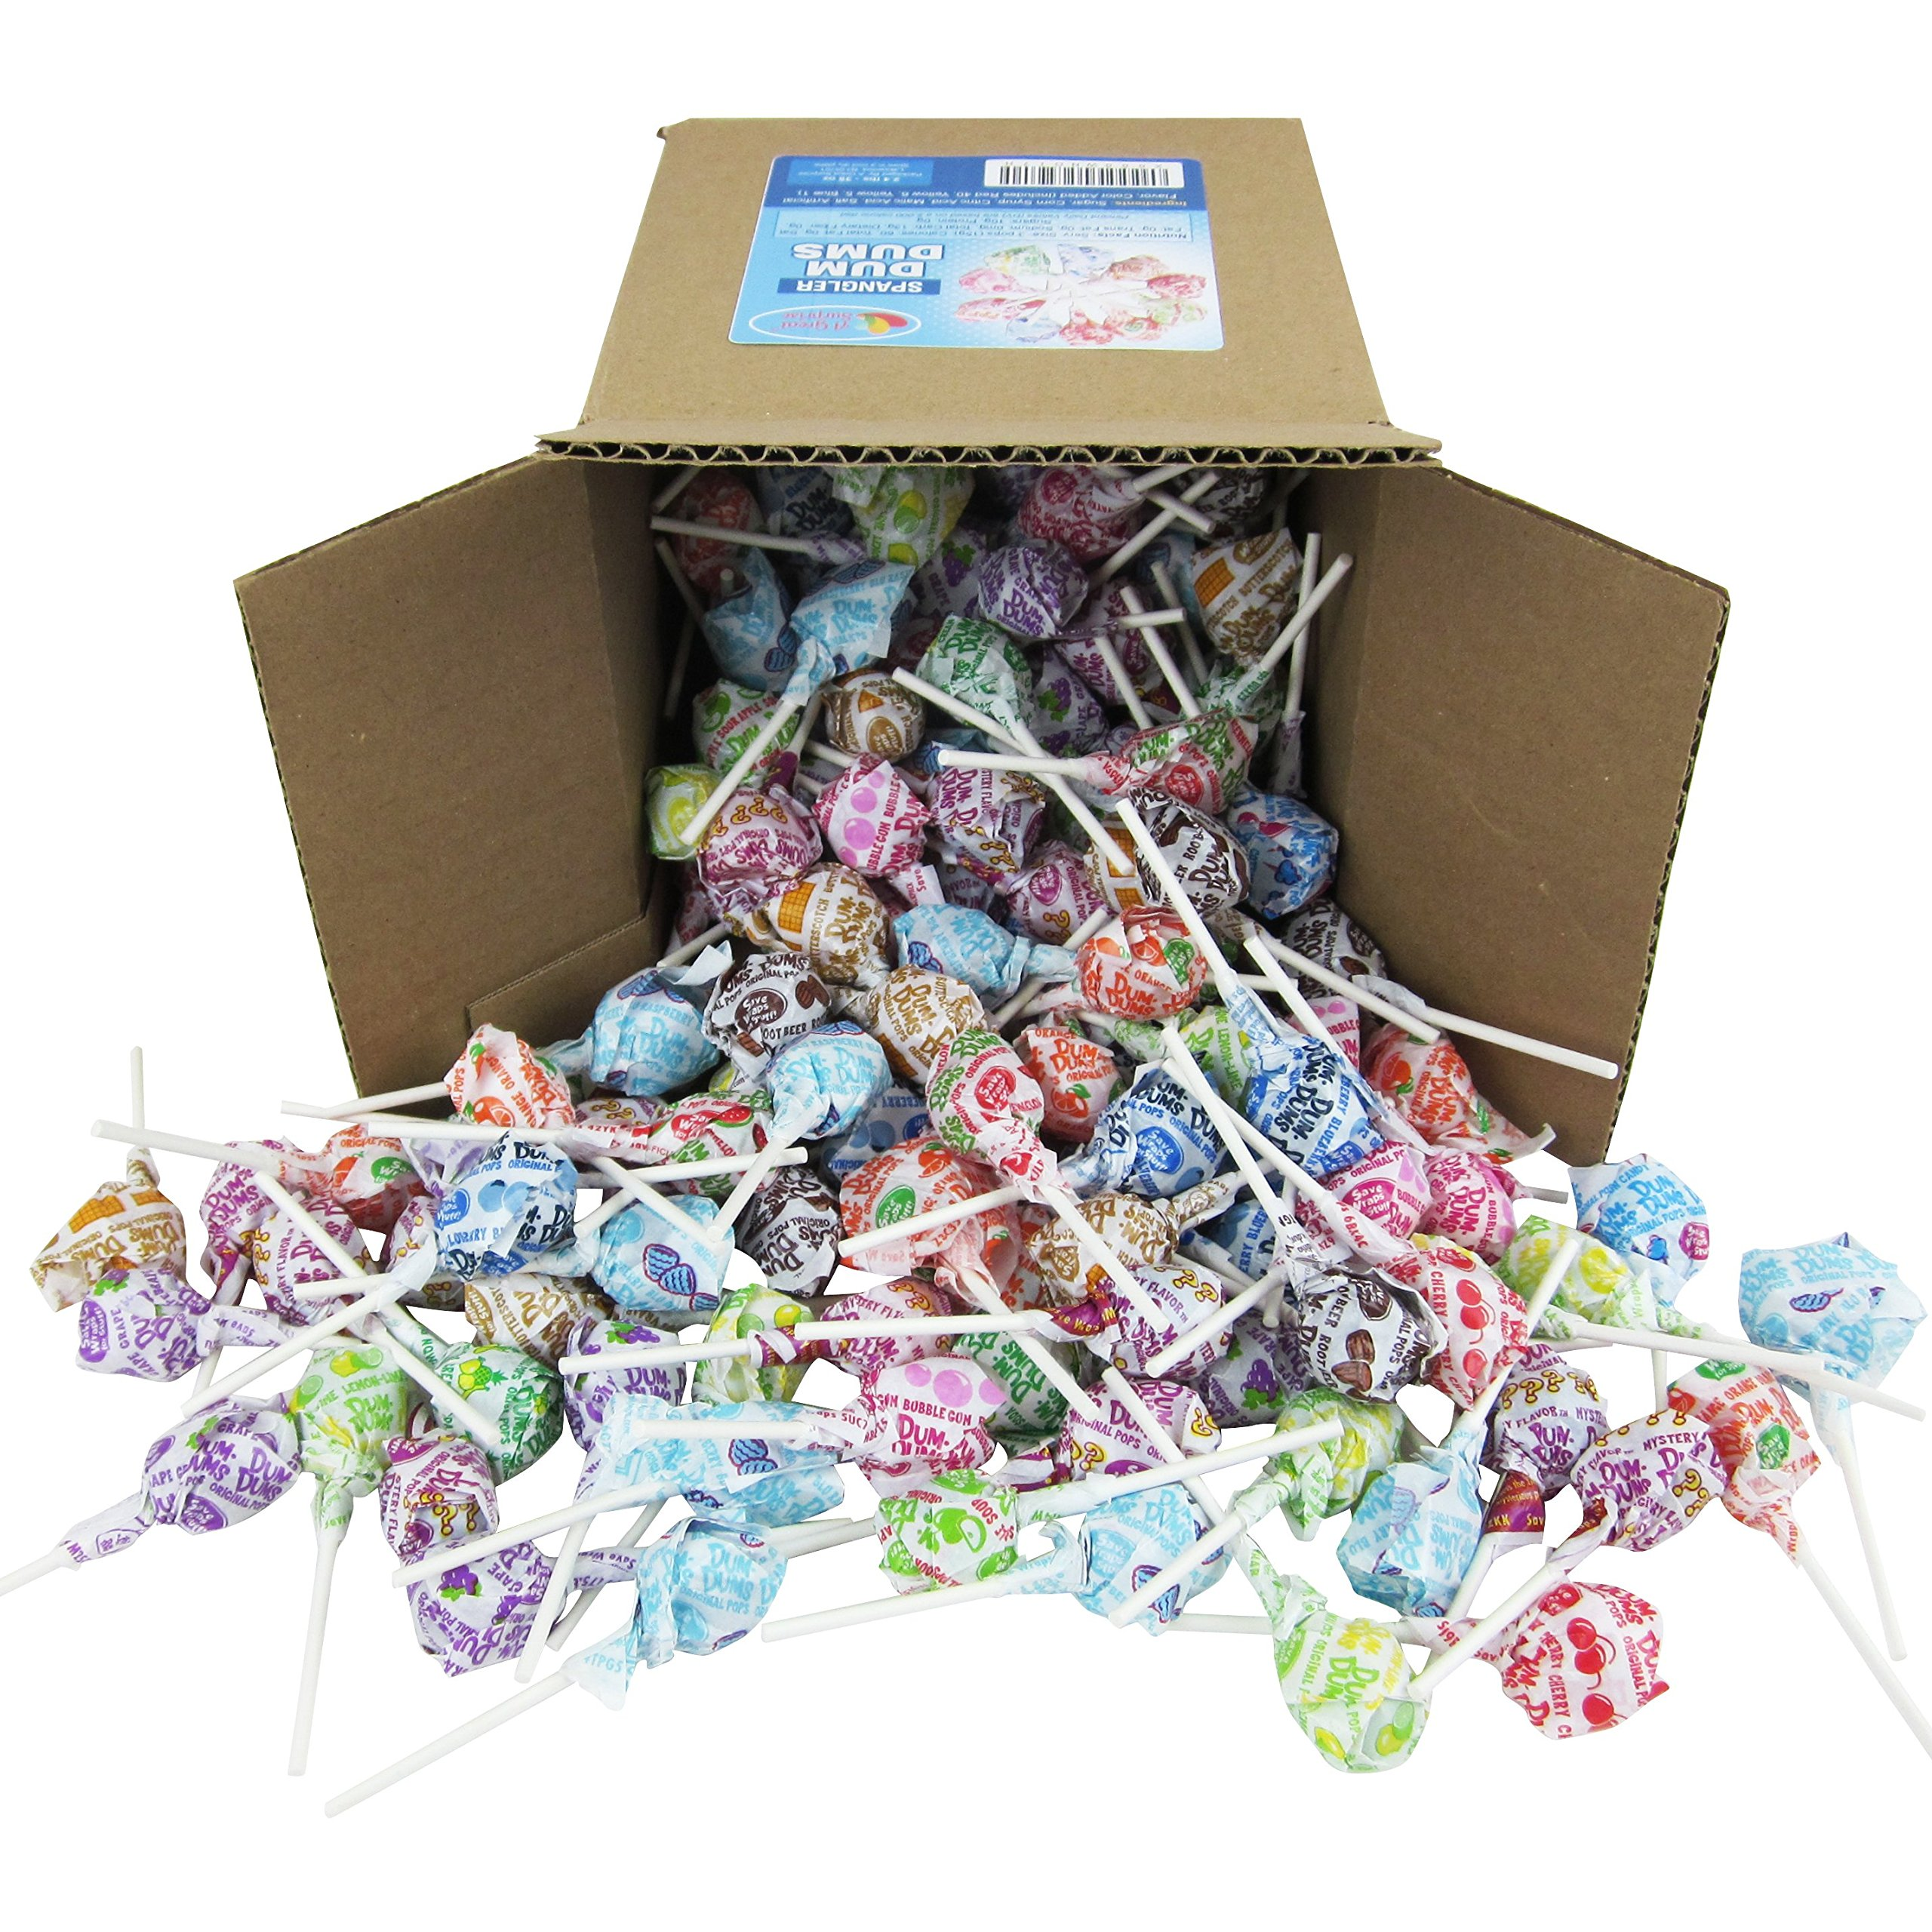 Dum Dums Pops by Spangler, Assorted Flavors Lollipops in 6x6x6 Box Bulk Candy, 2.4 lbs. - 38 oz. by Dum Dums (Image #1)